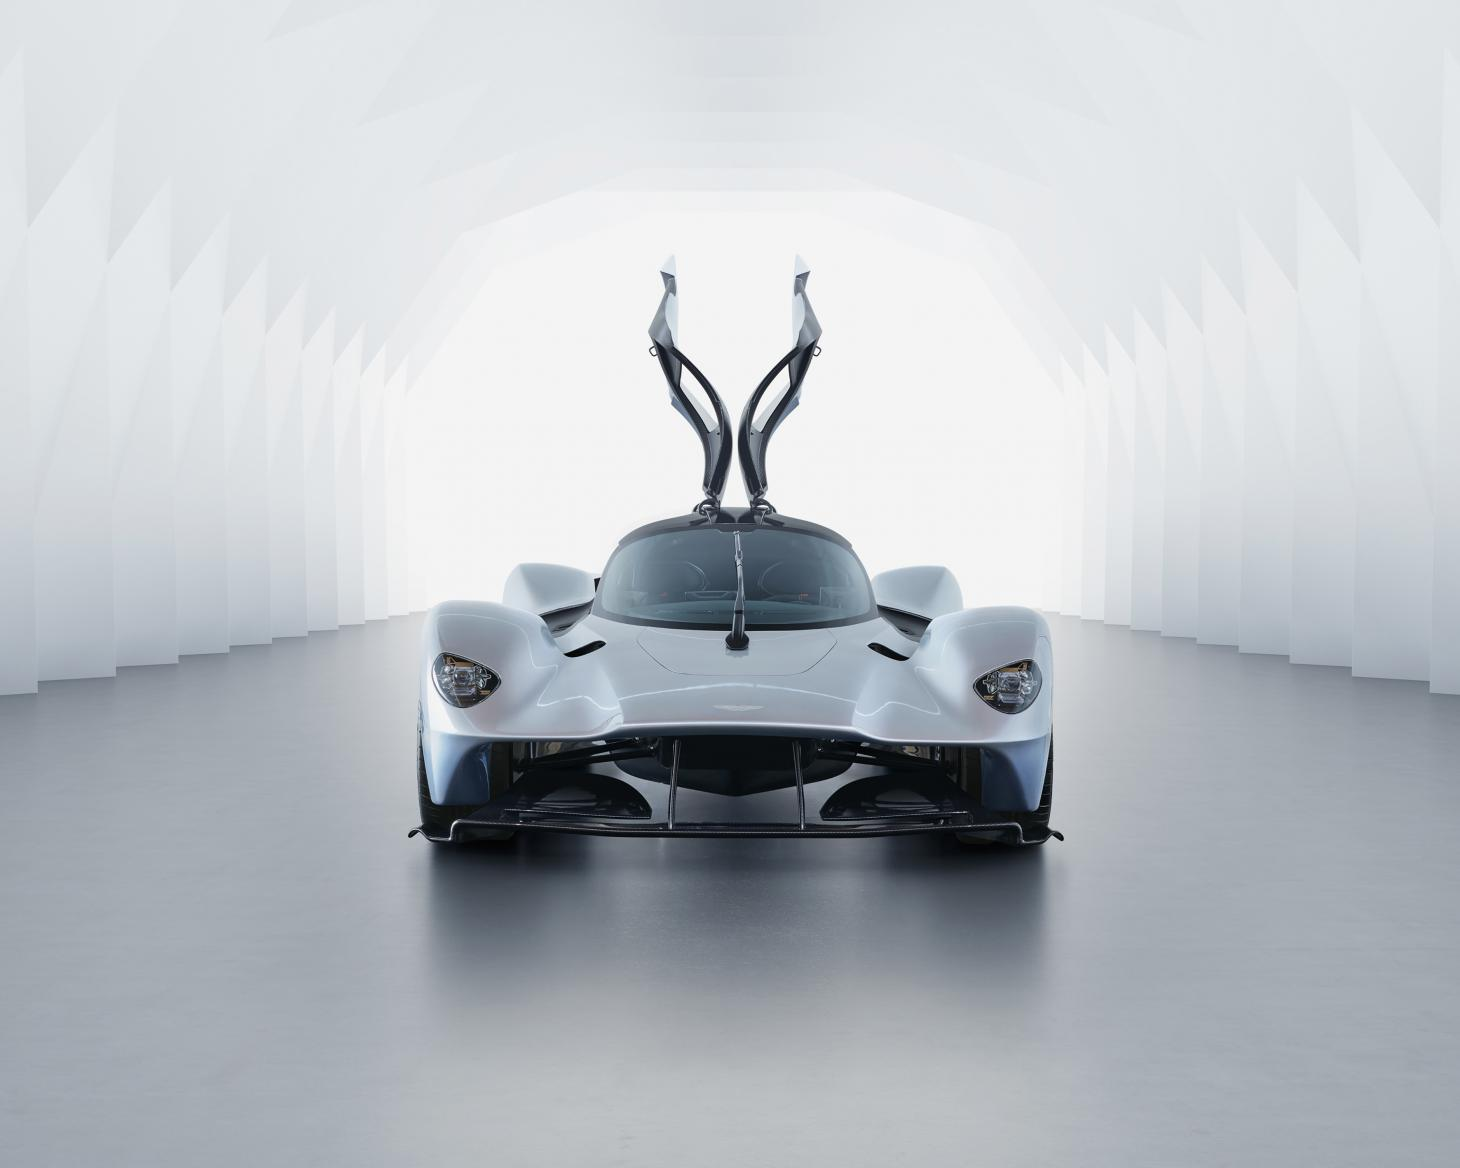 2020 Aston Martin Valkyrie, from Ultimate Collector Cars, published by Taschen